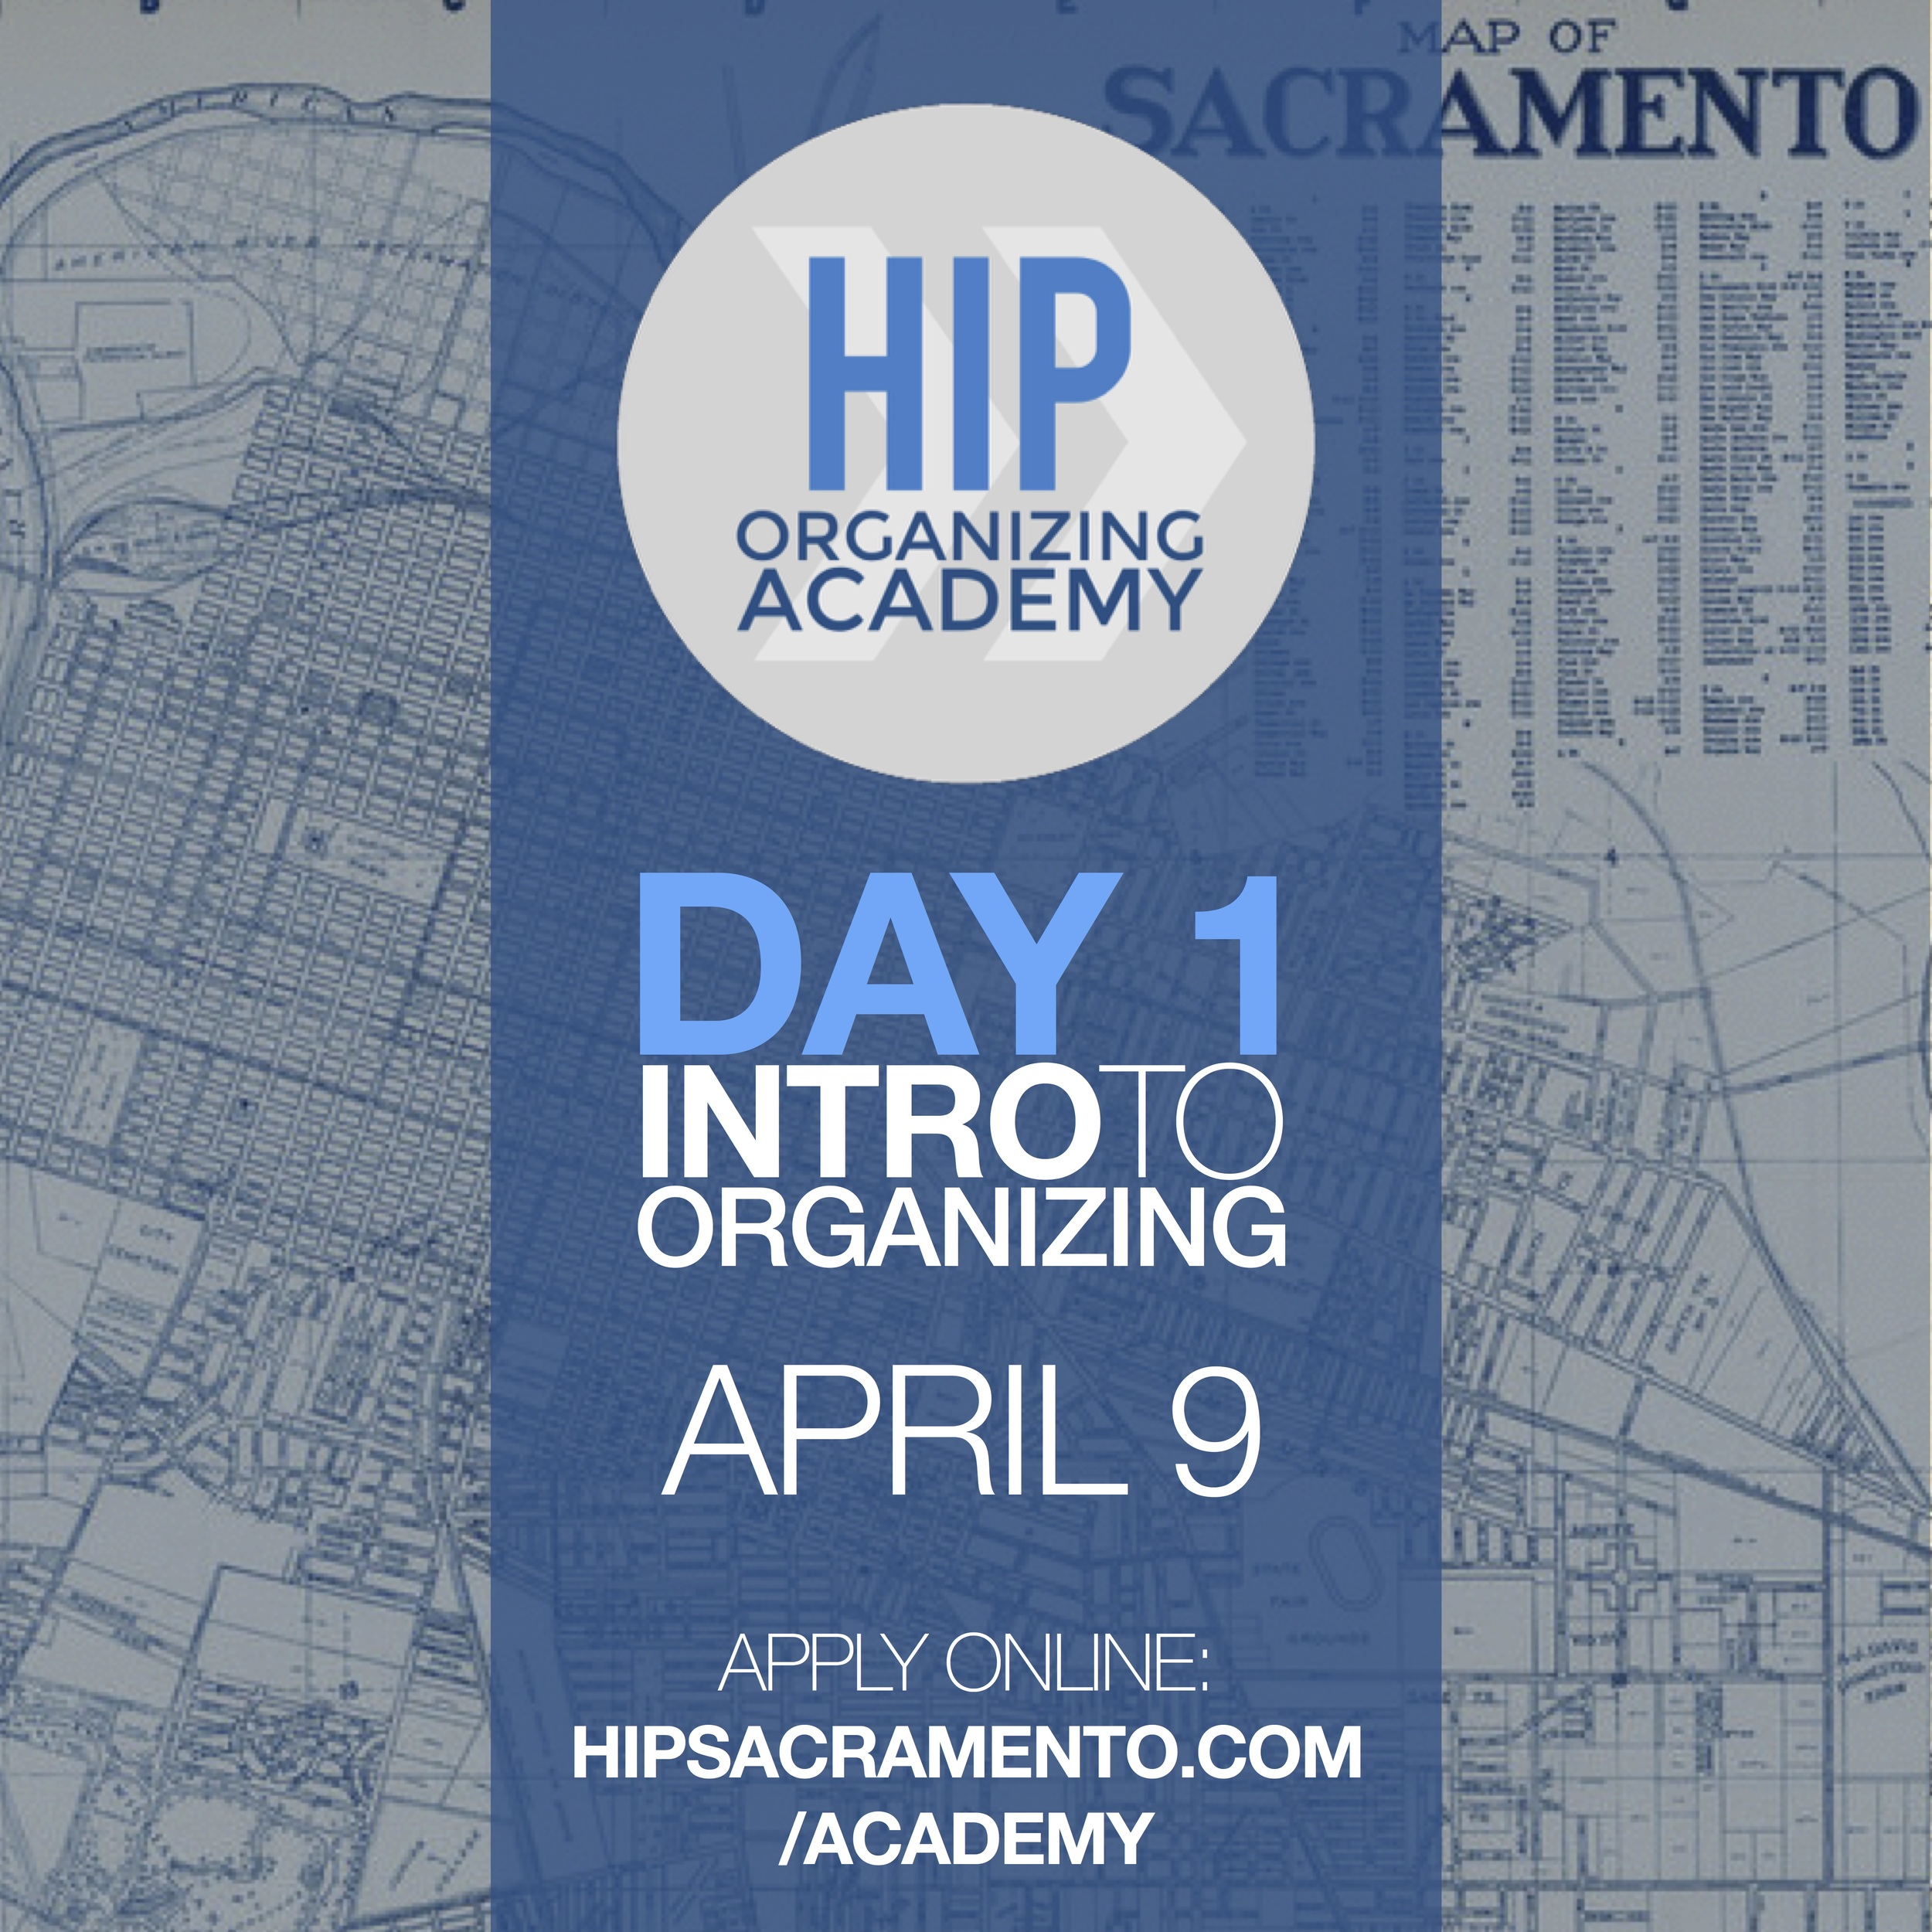 HIP_ACADEMY_day1.jpg